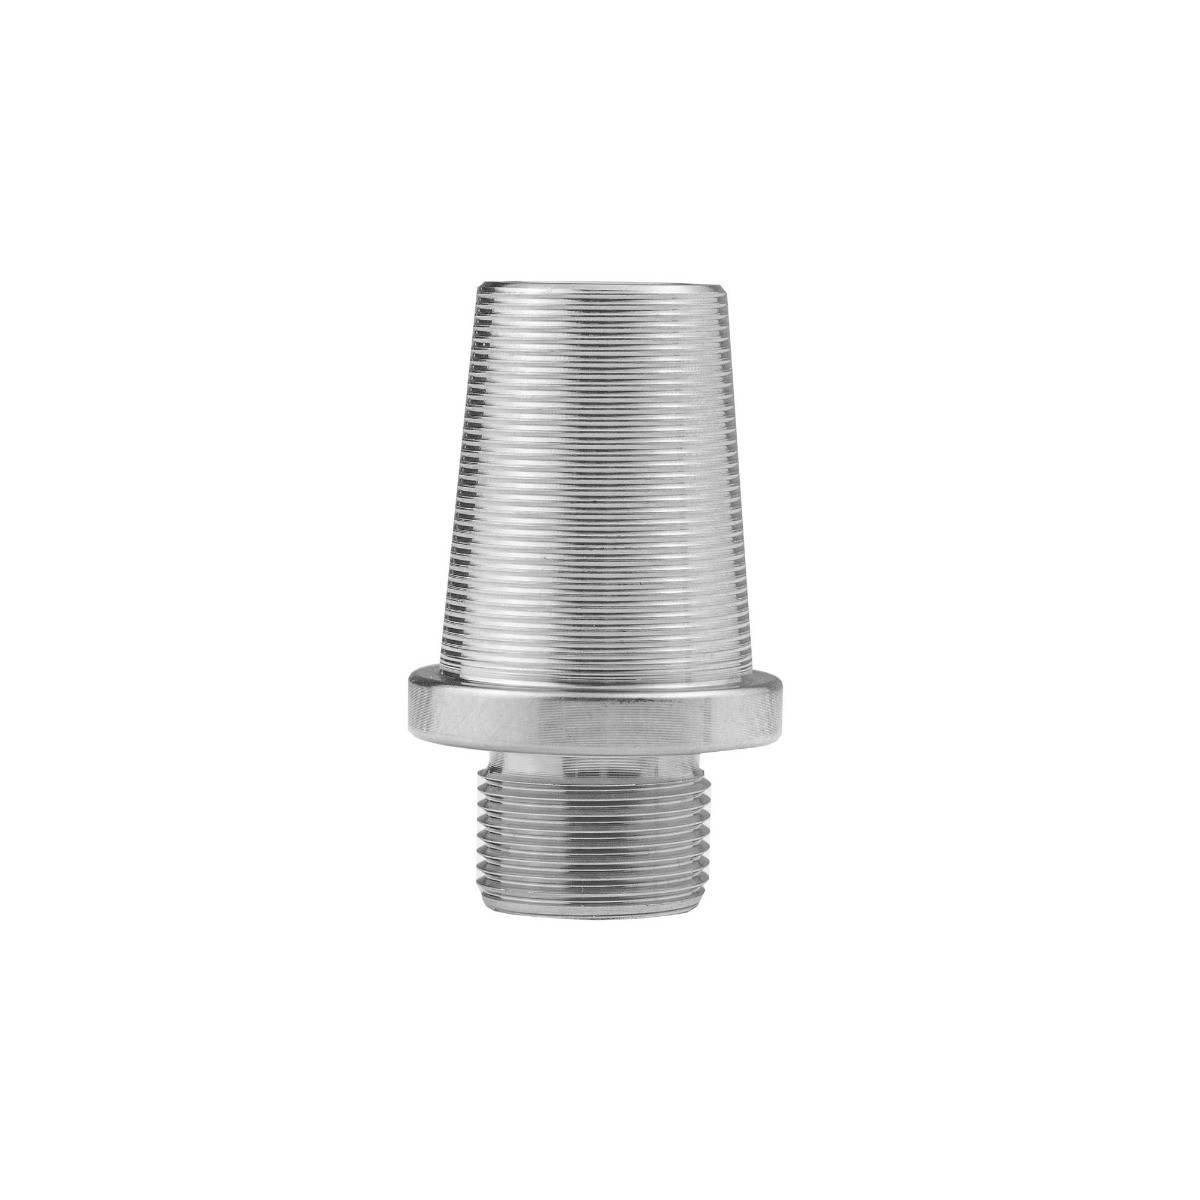 Bowl adapter | Stainless steel